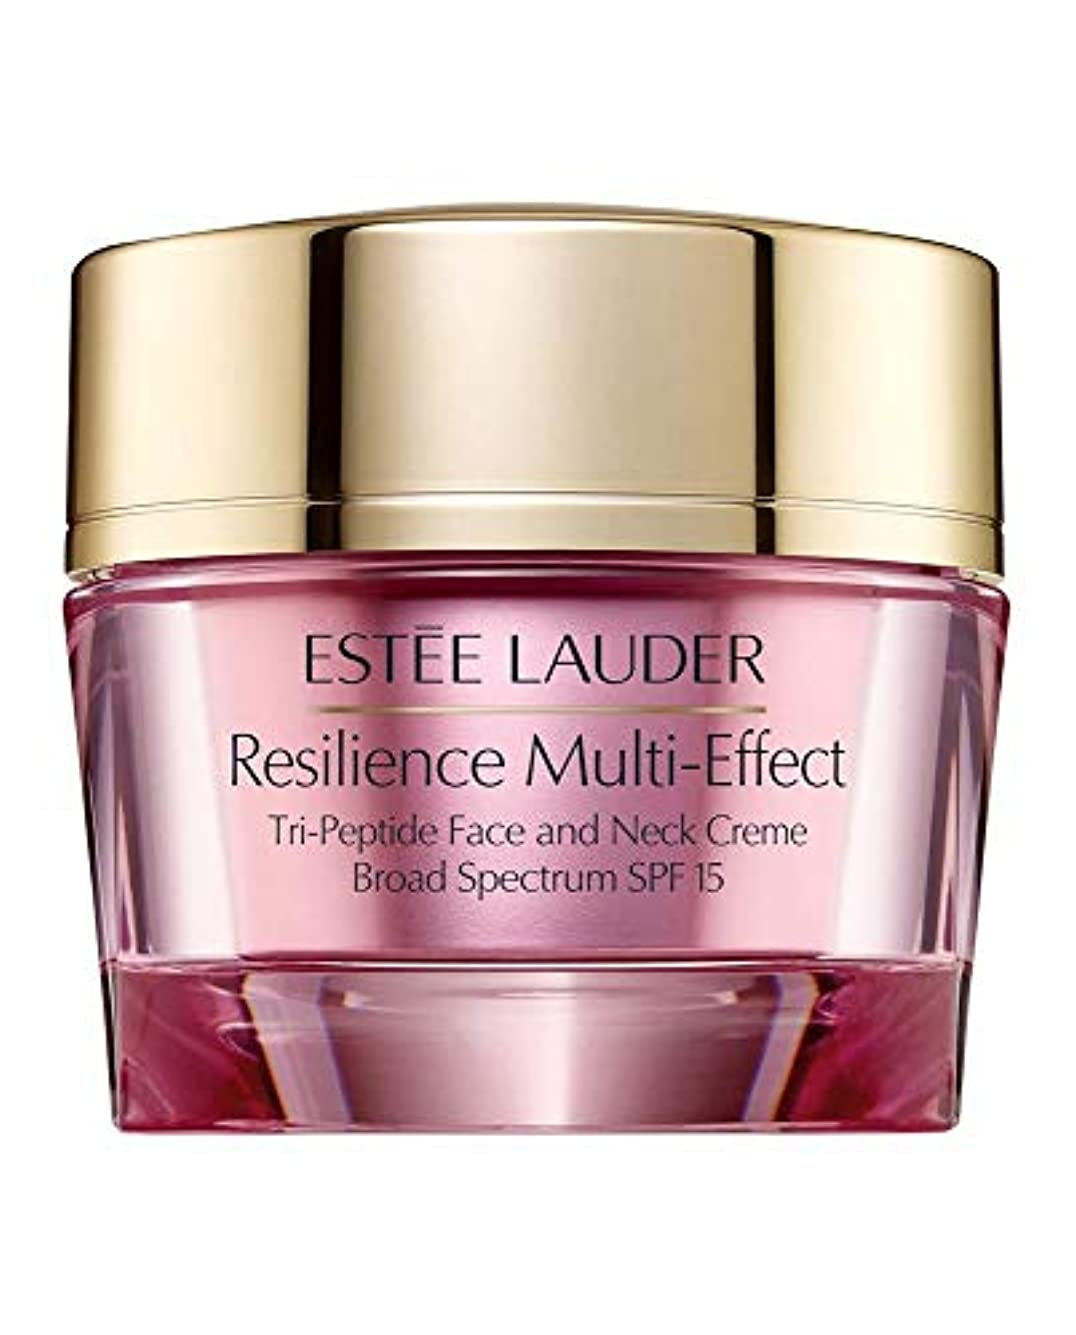 遠い創傷コメントエスティローダー Resilience Multi-Effect Tri-Peptide Face and Neck Creme SPF 15 - For Dry Skin 50ml/1.7oz並行輸入品